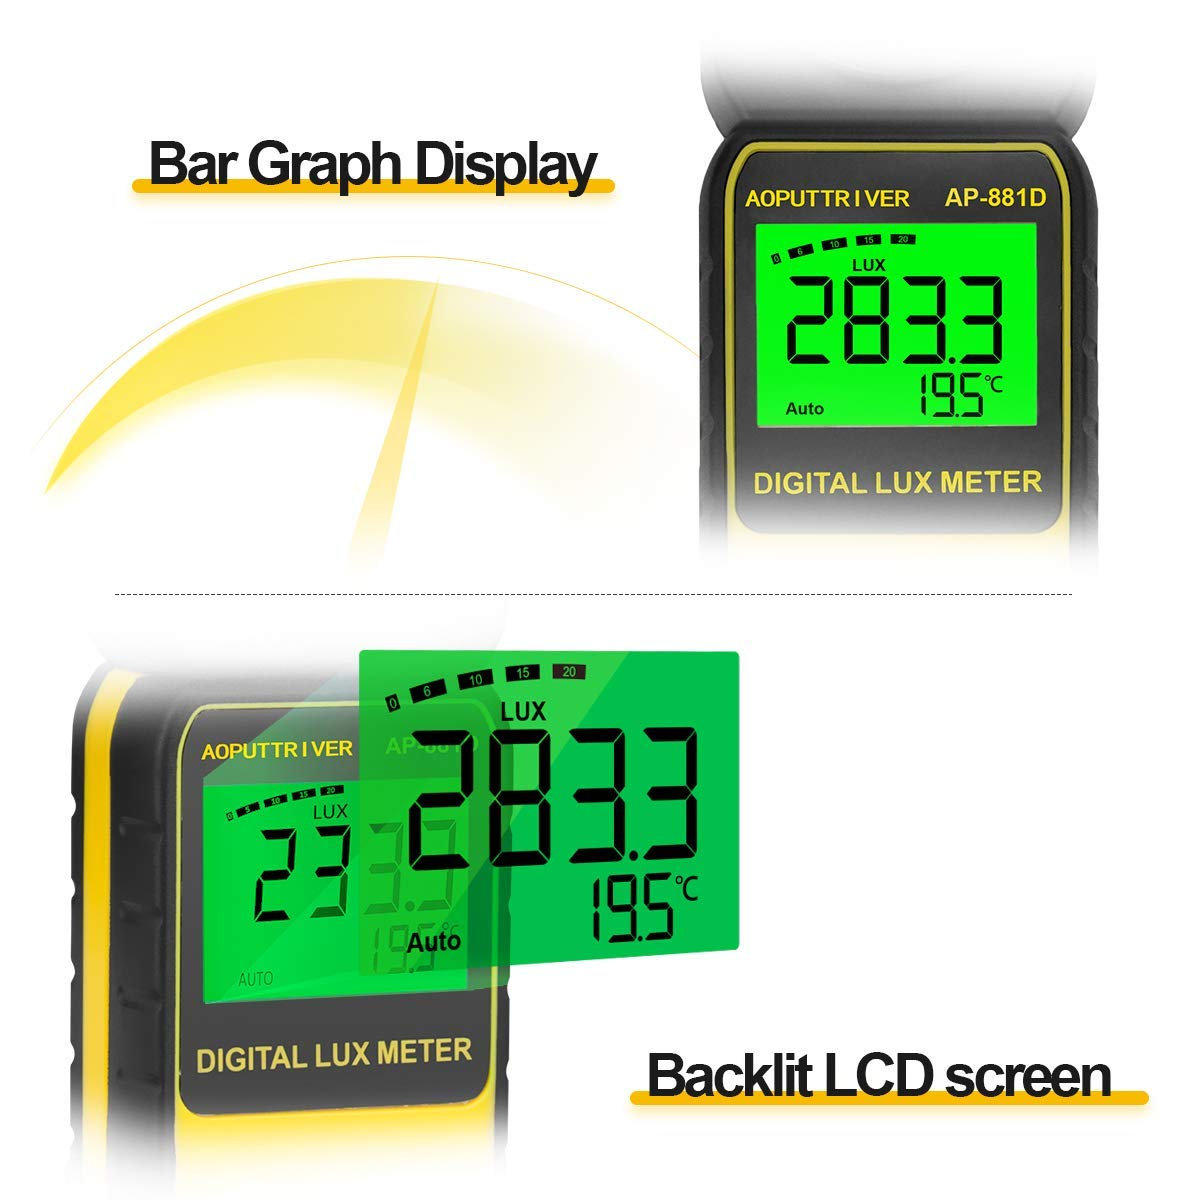 Light Meter 881D Digital Illuminance Meter Ambient Temperature Measurer with Range up to 400,000 Lux Luxmeter,Rotatable Head for 270 Degrees,Display 3999,Data Hold,Back Light,Max/Min Hold,Data storag by AOPUTTRIVER (Image #4)